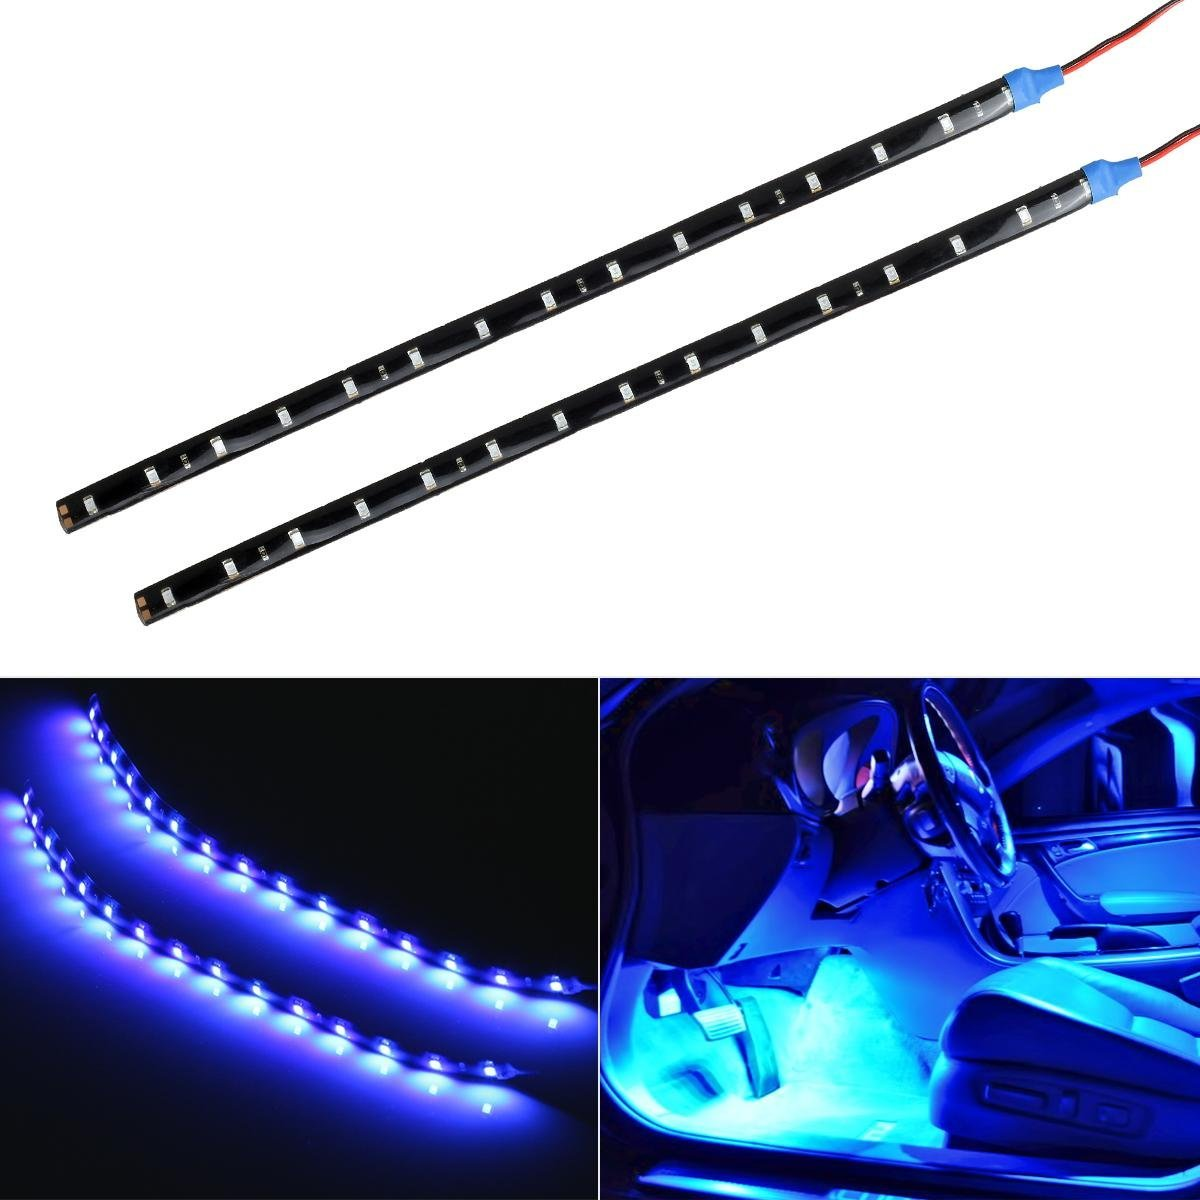 2pcs Car Auto Motorcycle Strip Lights 30CM Blue DC 12V 15 LED SMD Waterproof Flexible Light Flexible Car LED Light Bulb